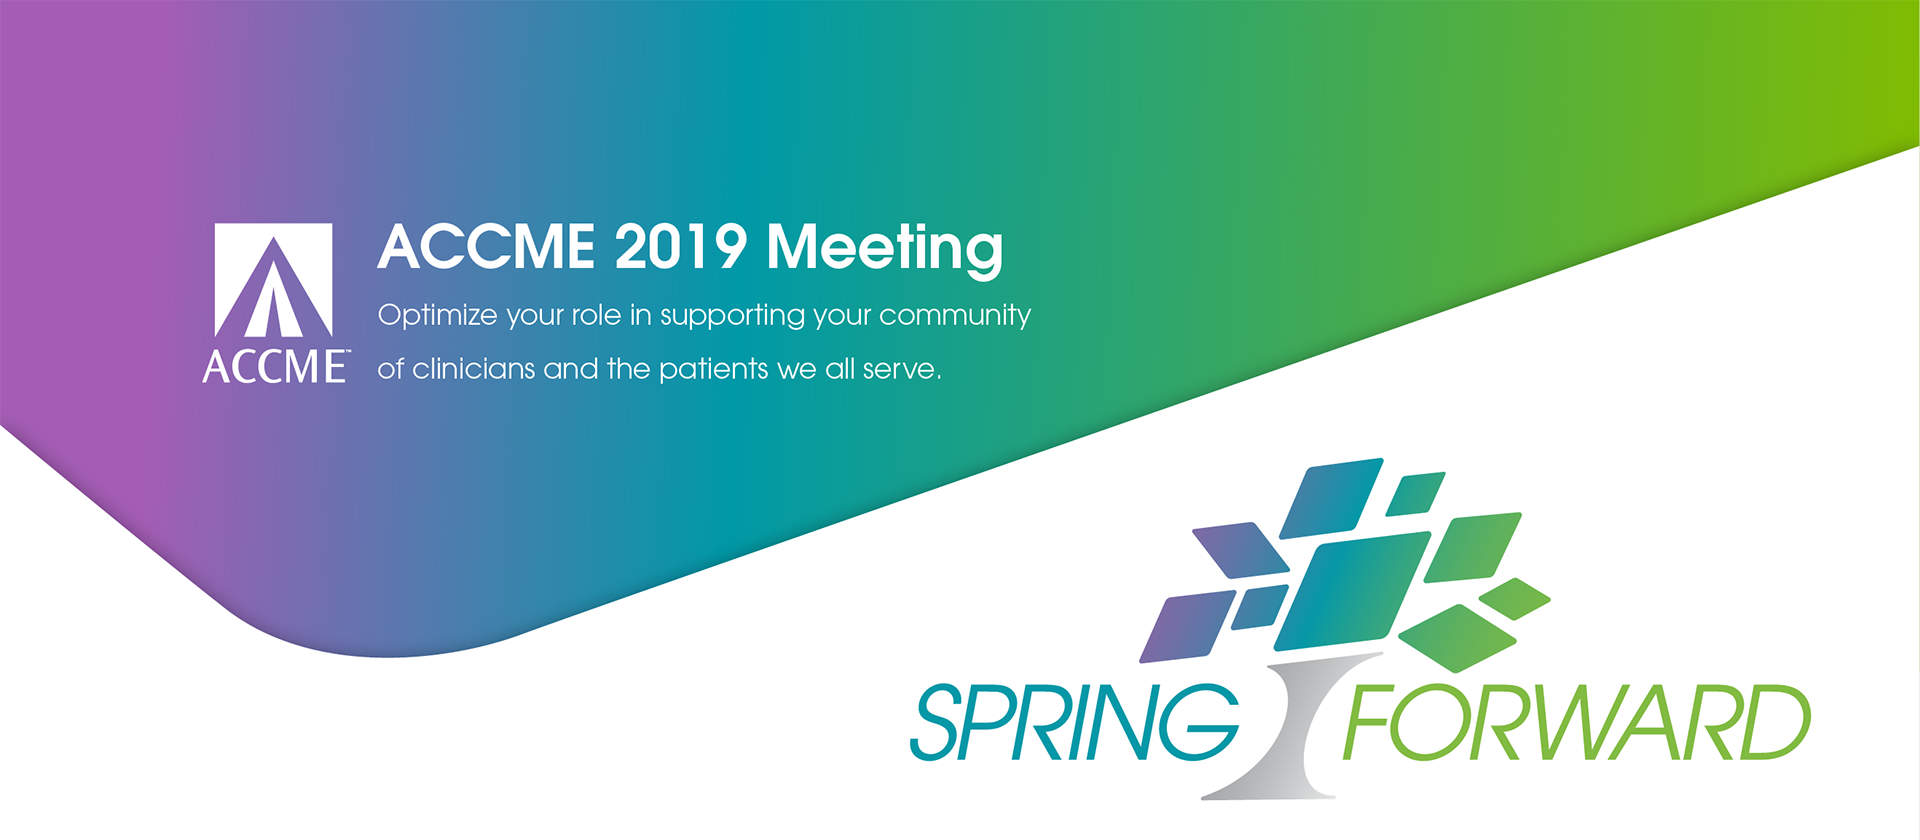 ACCME 2019 Meeting: Spring Forward